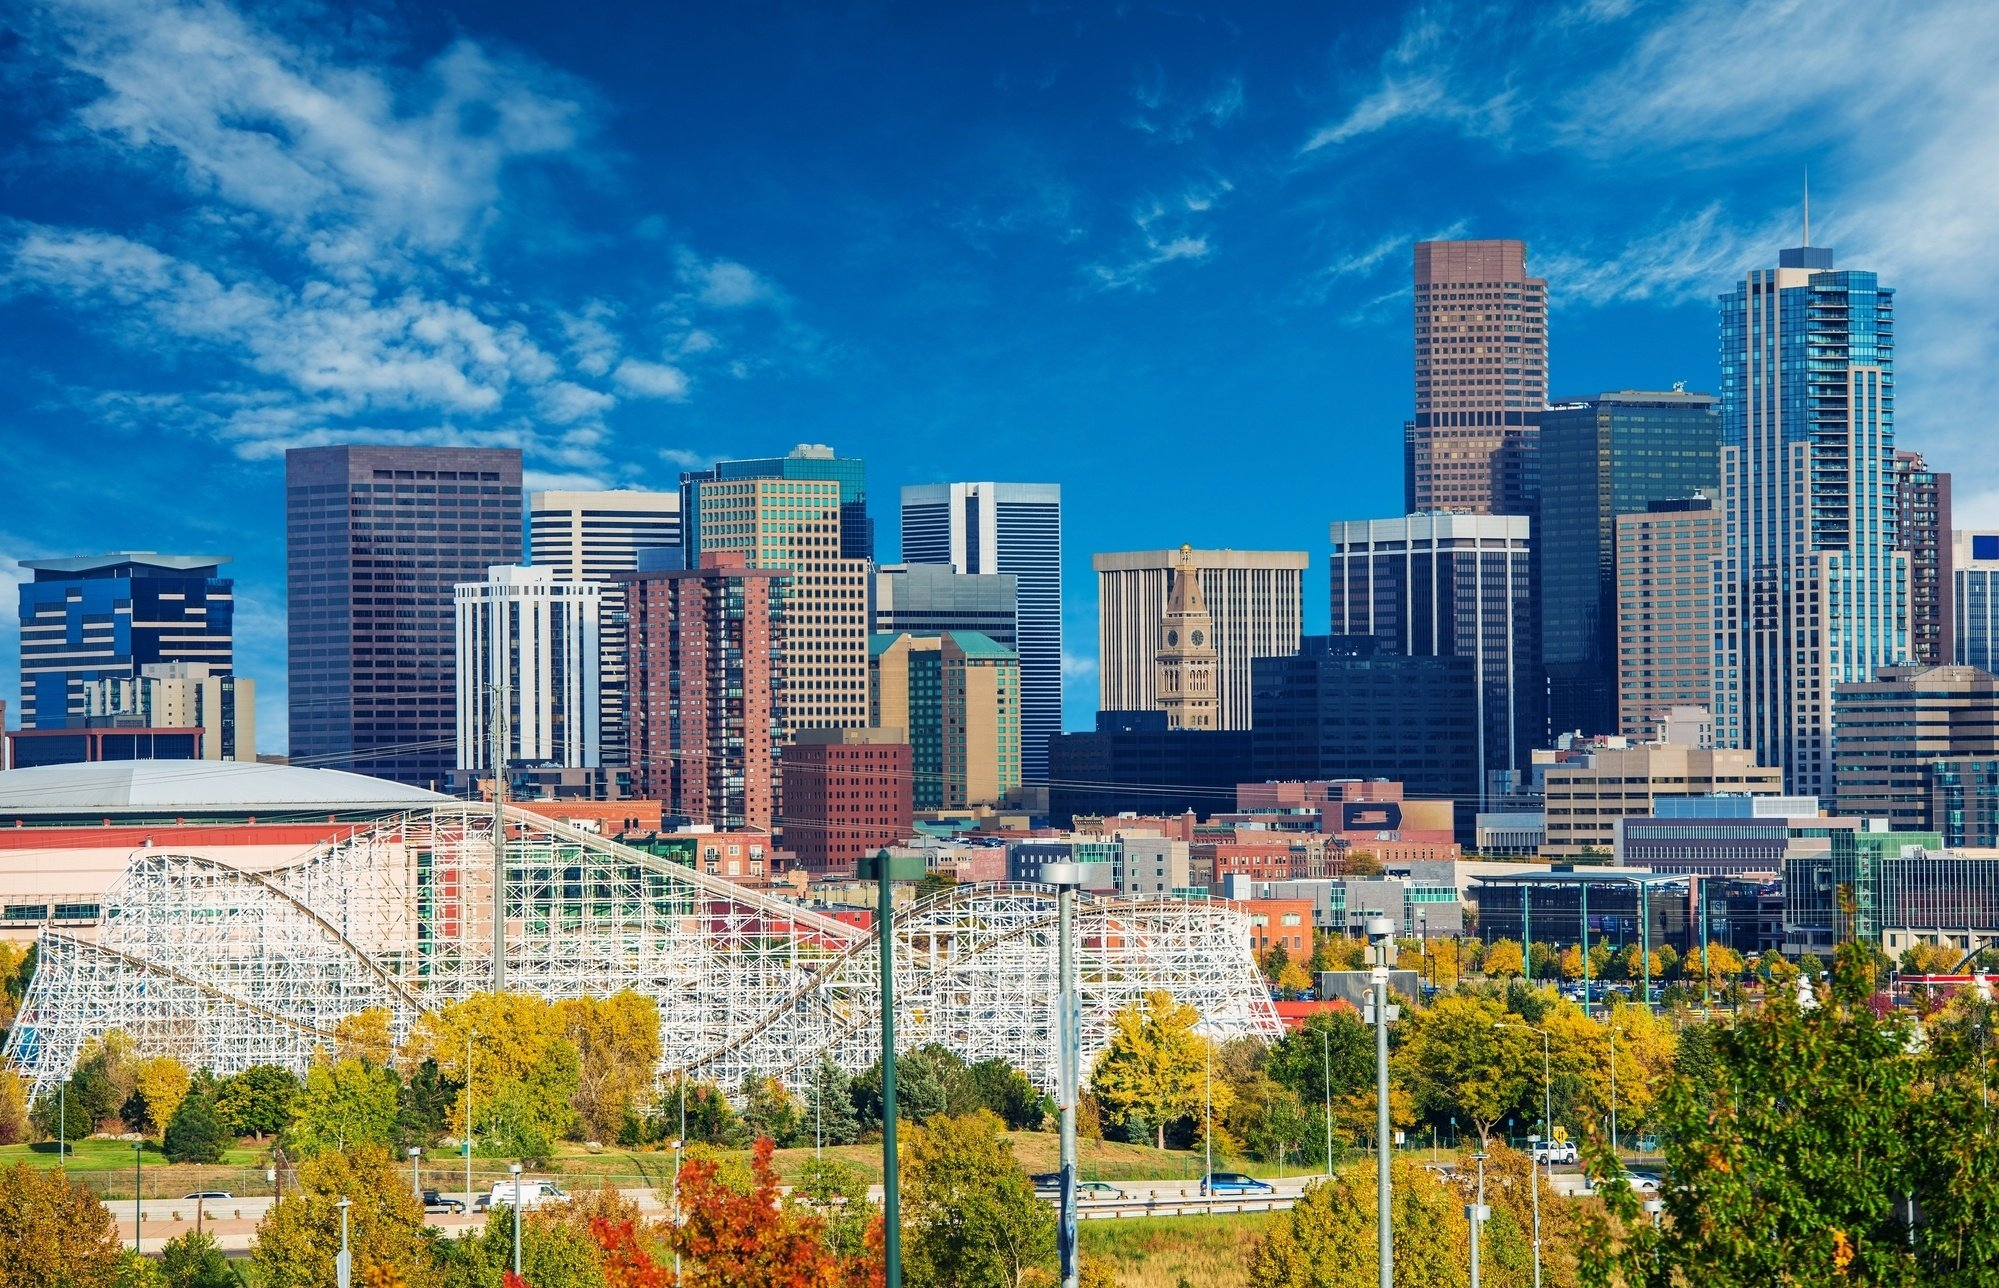 Denver, Colorado a.k.a. Mile-High City